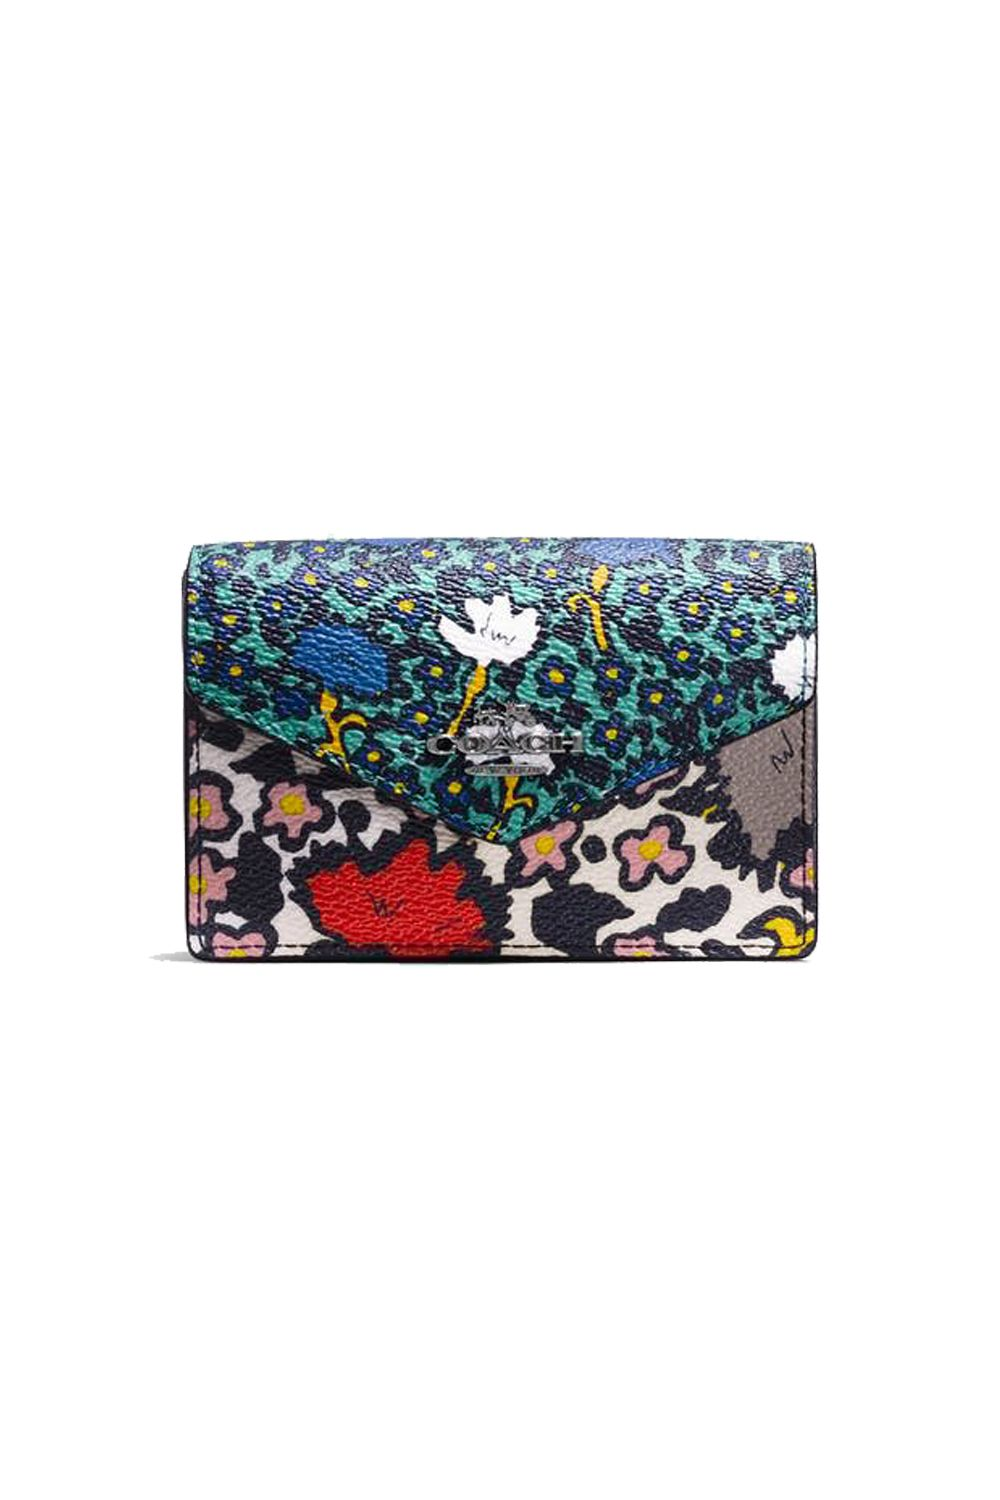 "<p>A card case that's wild at heart but still responsible enough to have a snap closure and inside zip pocket.&nbsp&#x3B;</p><p><em data-redactor-tag=""em"" data-verified=""redactor"">$38</em></p><p><strong data-redactor-tag=""strong"" data-verified=""redactor"">BUY IT: <a href=""https://www.shopspring.com/products/53370171?page=3&amp&#x3B;query=card+case&amp&#x3B;taxonomy=women"" target=""_blank"" data-tracking-id=""recirc-text-link"">shopspring.com</a>.</strong></p>"